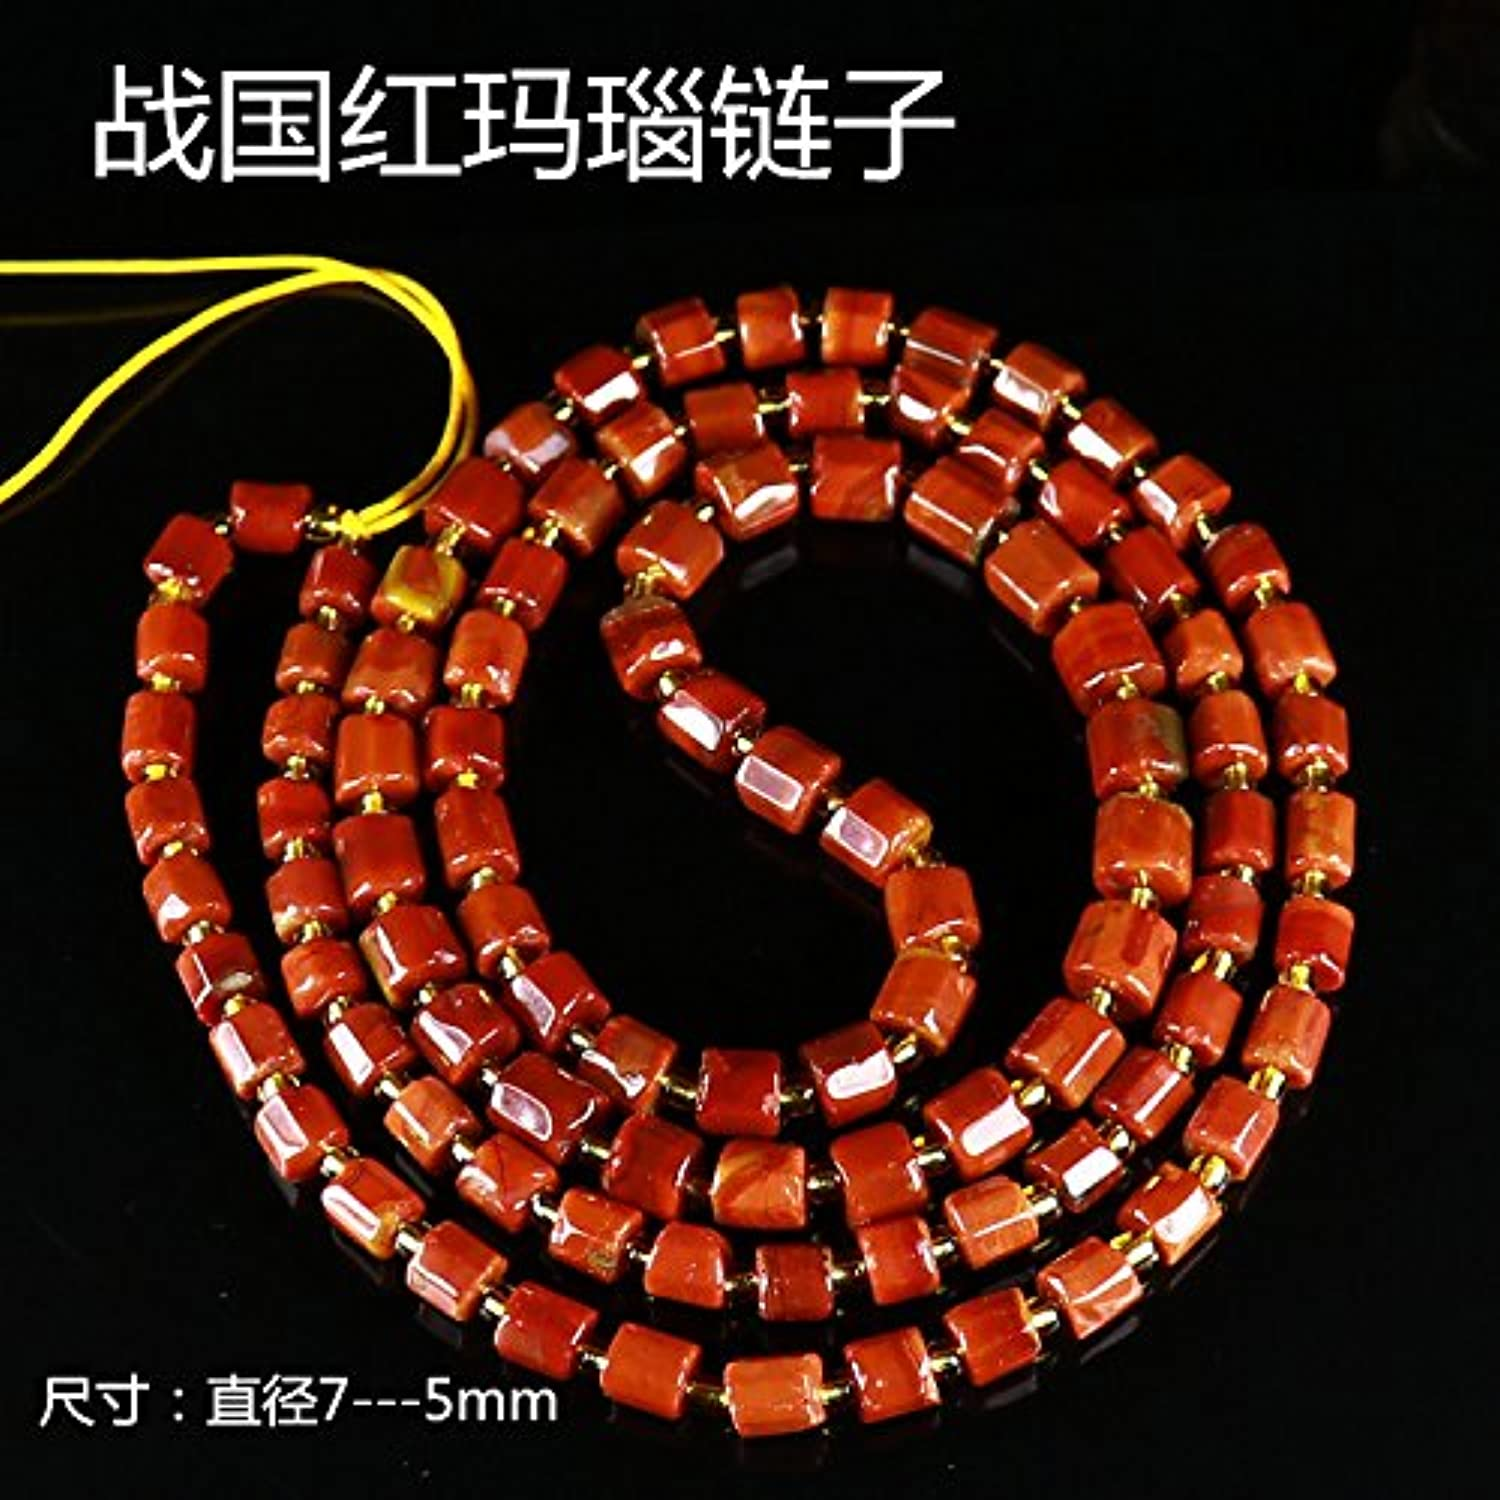 Warring States Onyx Necklace Pendant Chain Sweater Chain Lanyards Lanyard Accessories Necklace Pendant 014